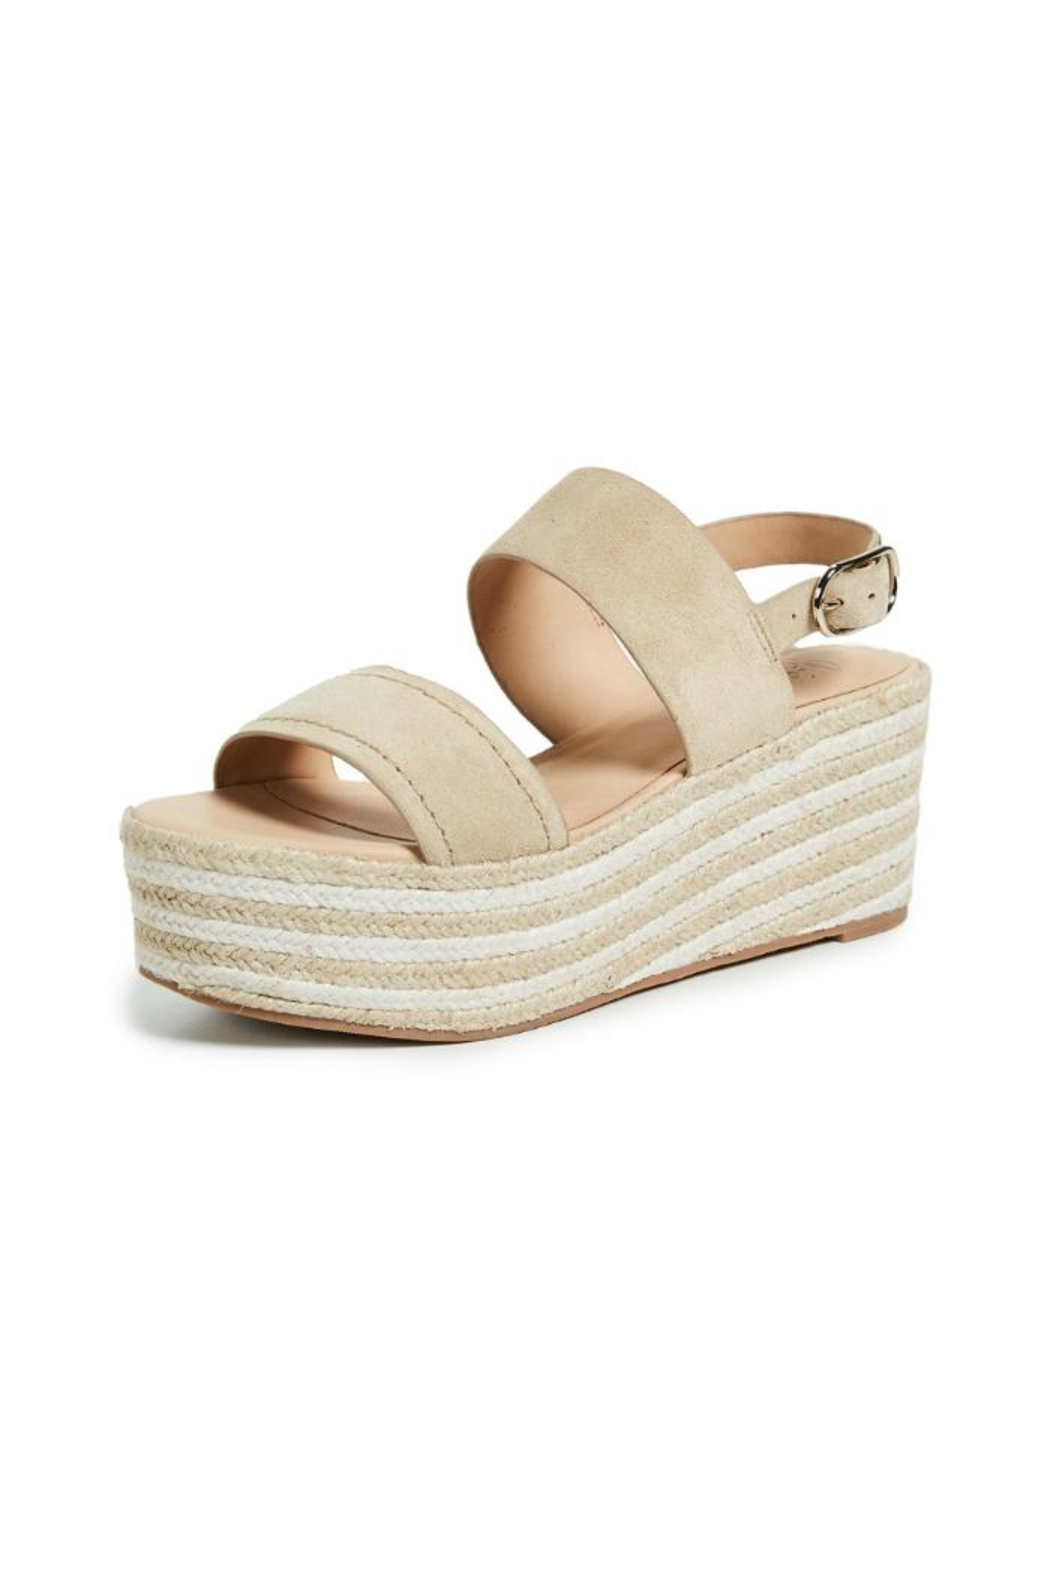 Joie Galicia Wedges - Main Image